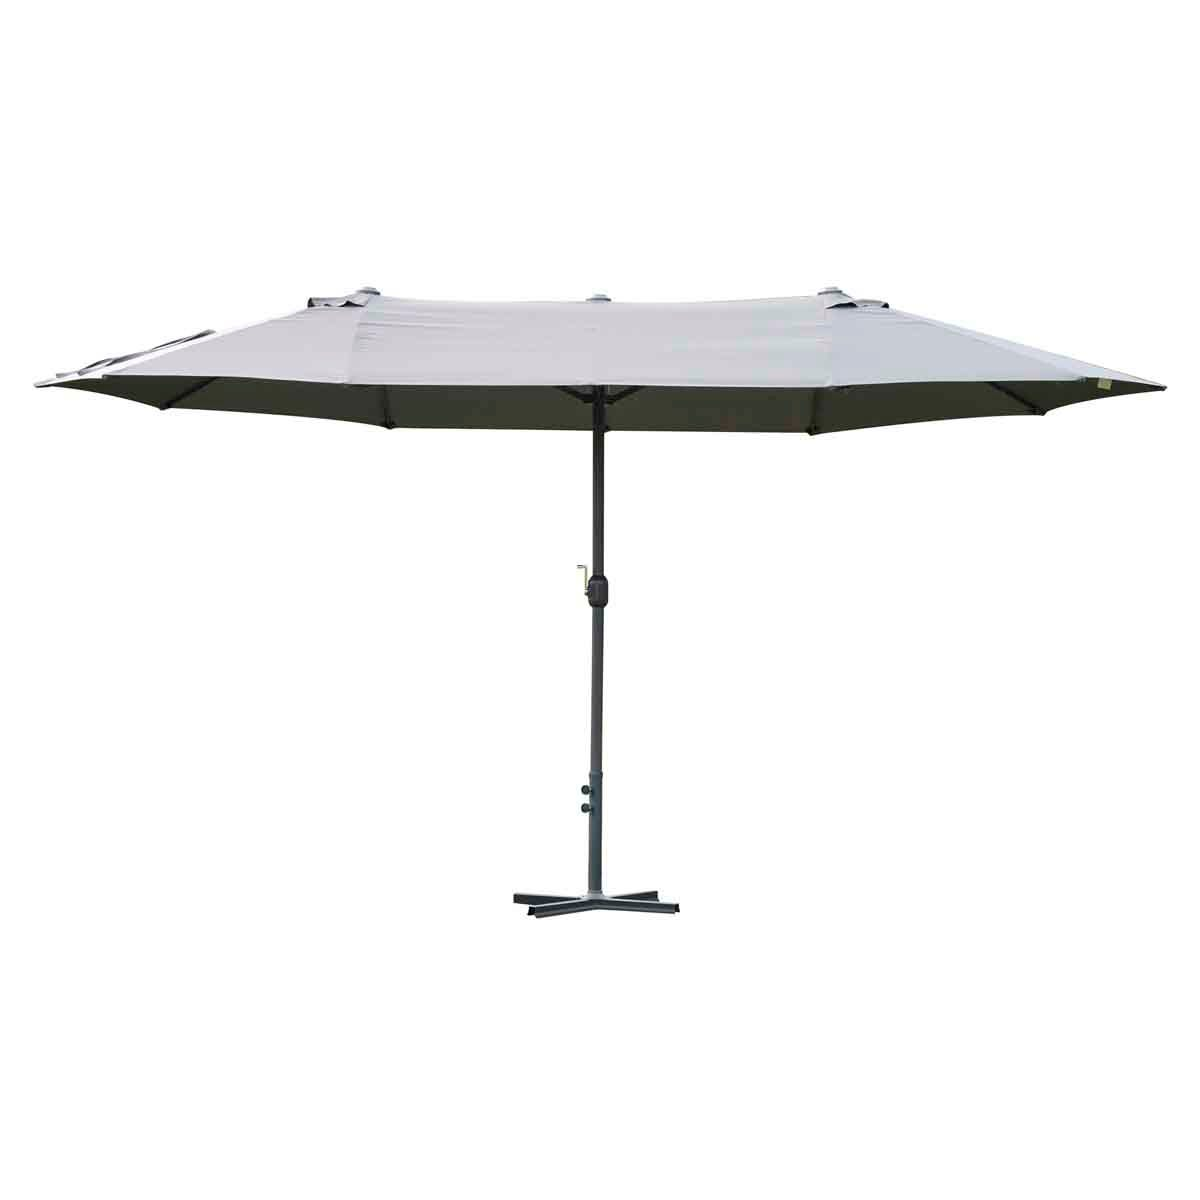 Outsunny 4.6m Double Canopy Parasol (base not included) - Light Grey